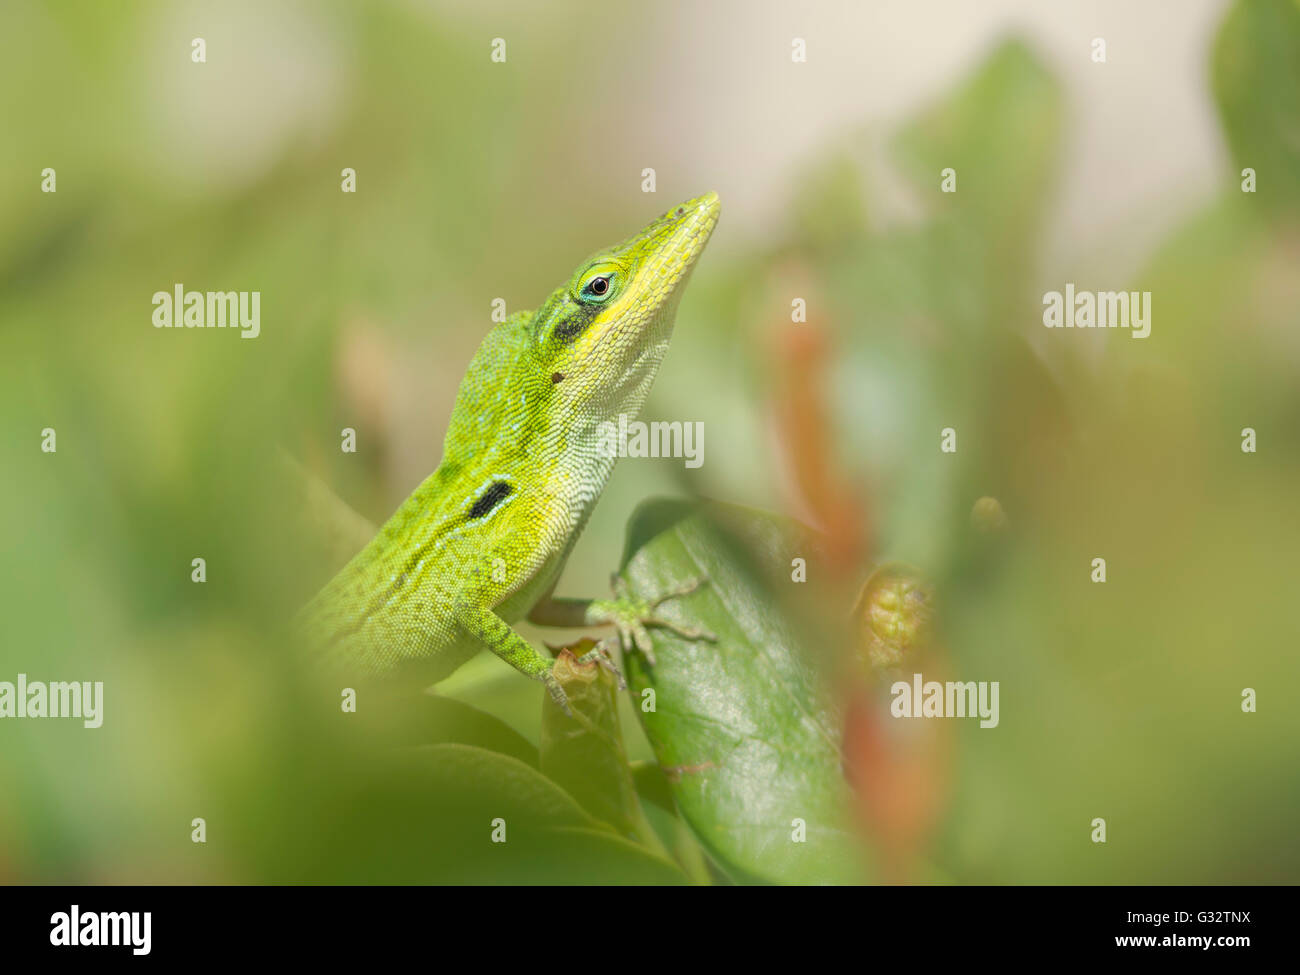 Florida green anole lizard (Anolis carolinensis) doing courtship display, Florida, America, USA Stock Photo